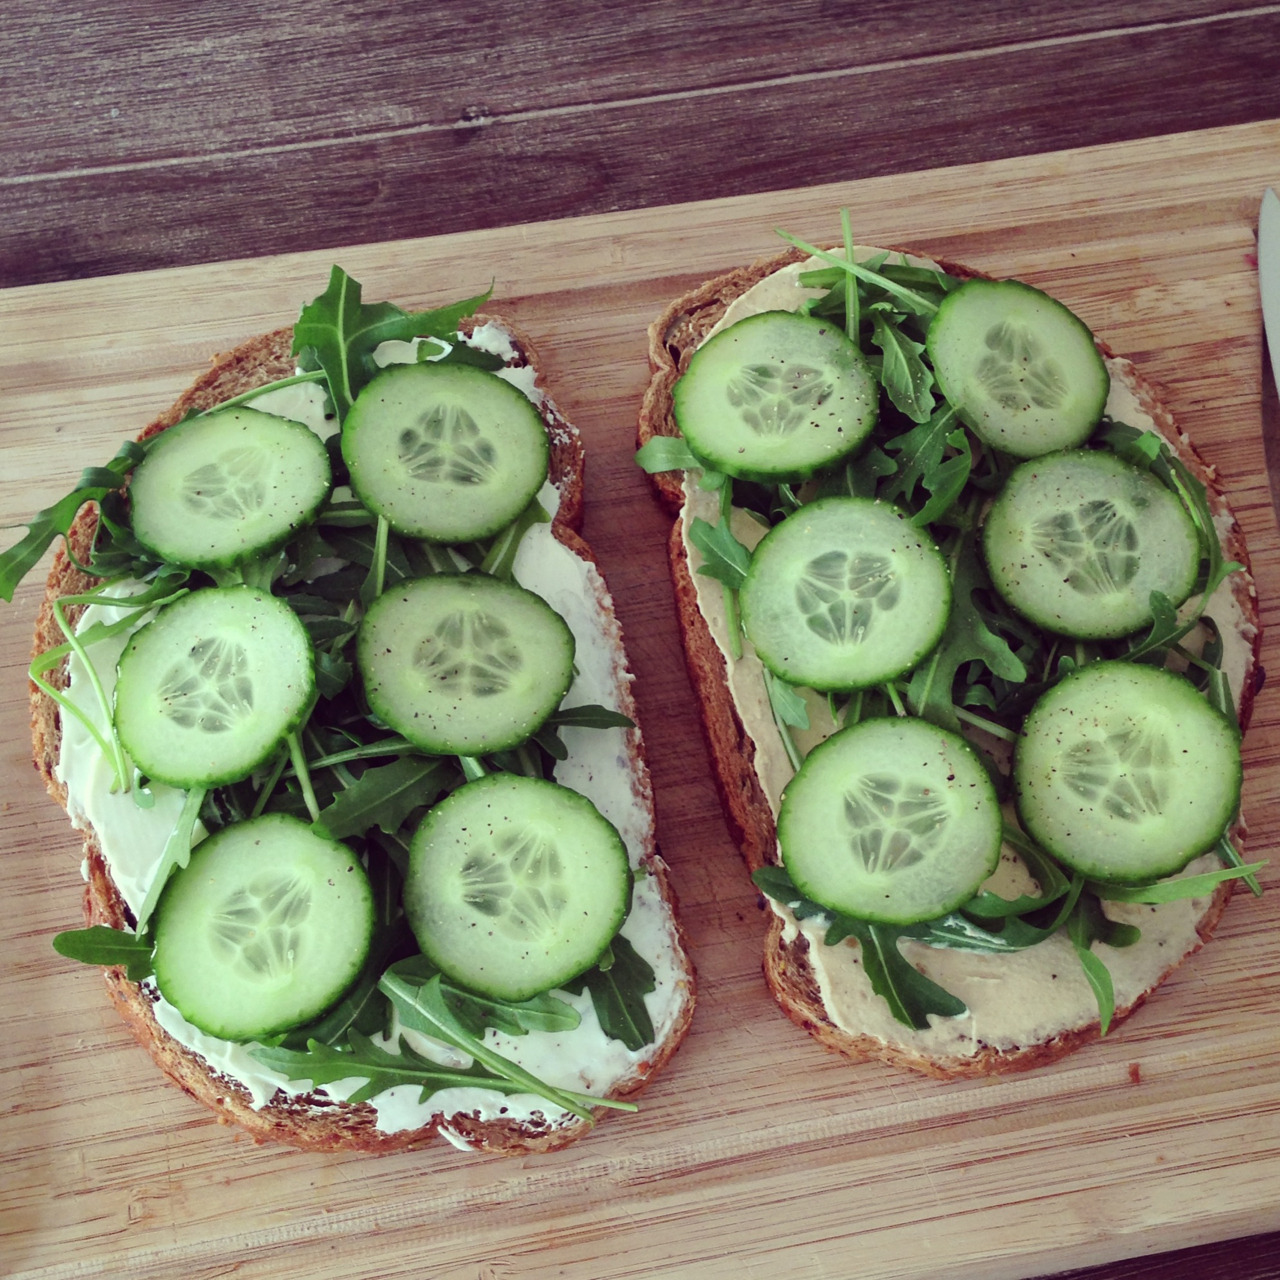 vegan-yums:  healthfityoga:  phitspiration:  melanie-is-healthy:  Lunch: 2 slices whole wheat pumpkin bread with cream cheese arugula and cucumber and the other with hummus arugula and cucumber seasoned with black pepper!  looks so good ommogmogmog  AHHHHHHHHHHHHH  Yum! just use vegan cream cheese.